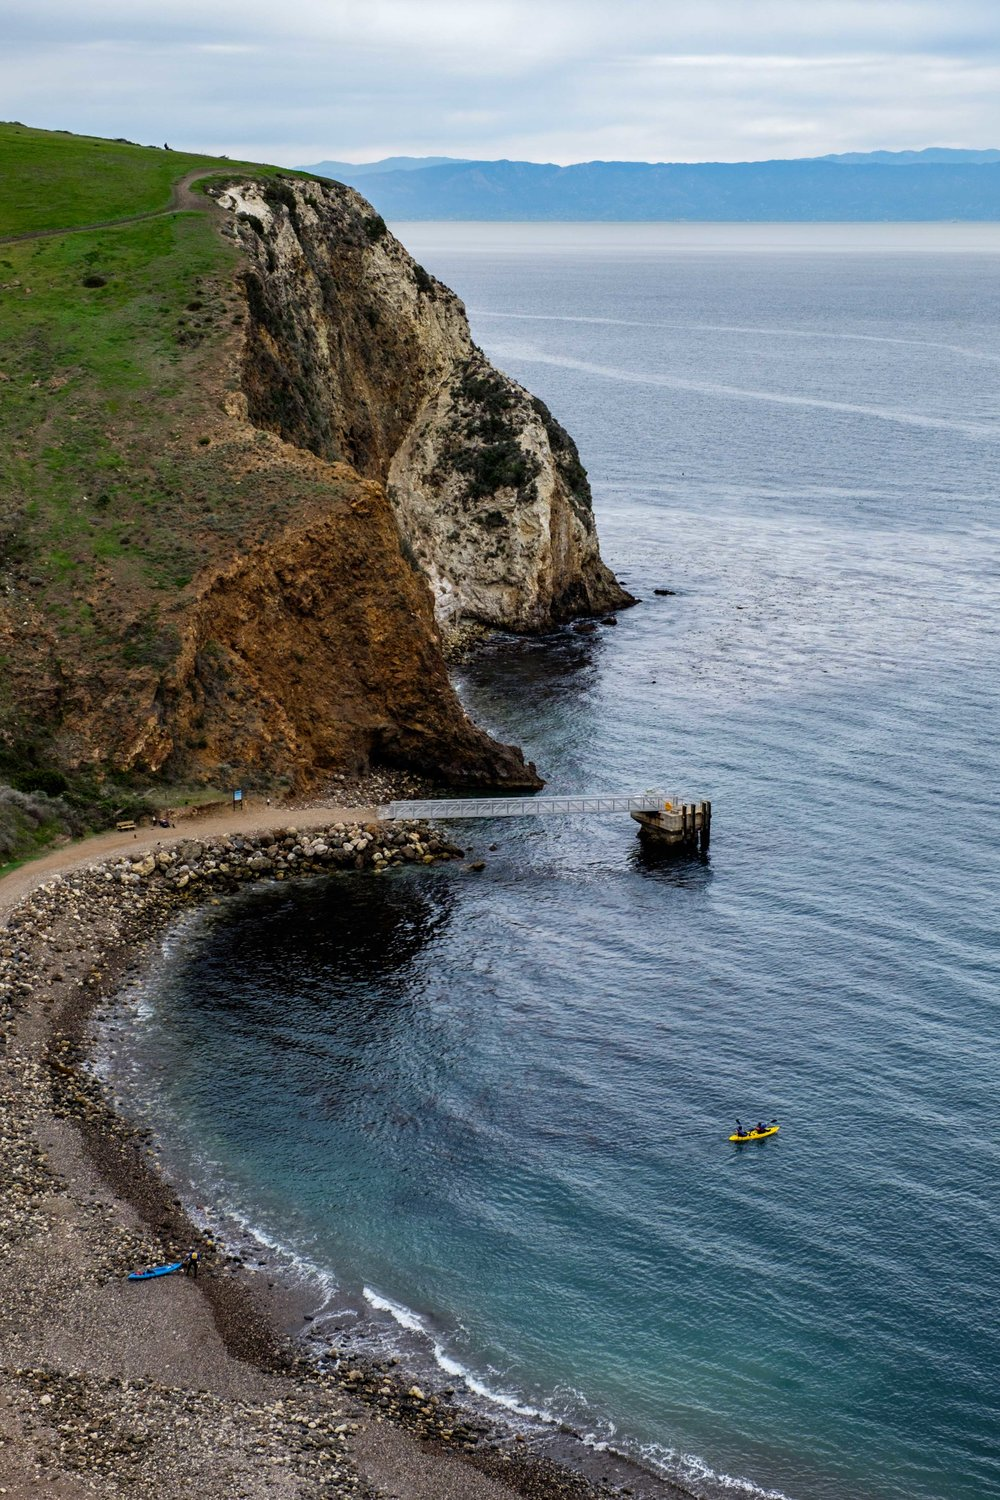 Looking down onto Smugglers Cove on Santa Cruz Island as kayakers push off into the marine sanctuary.